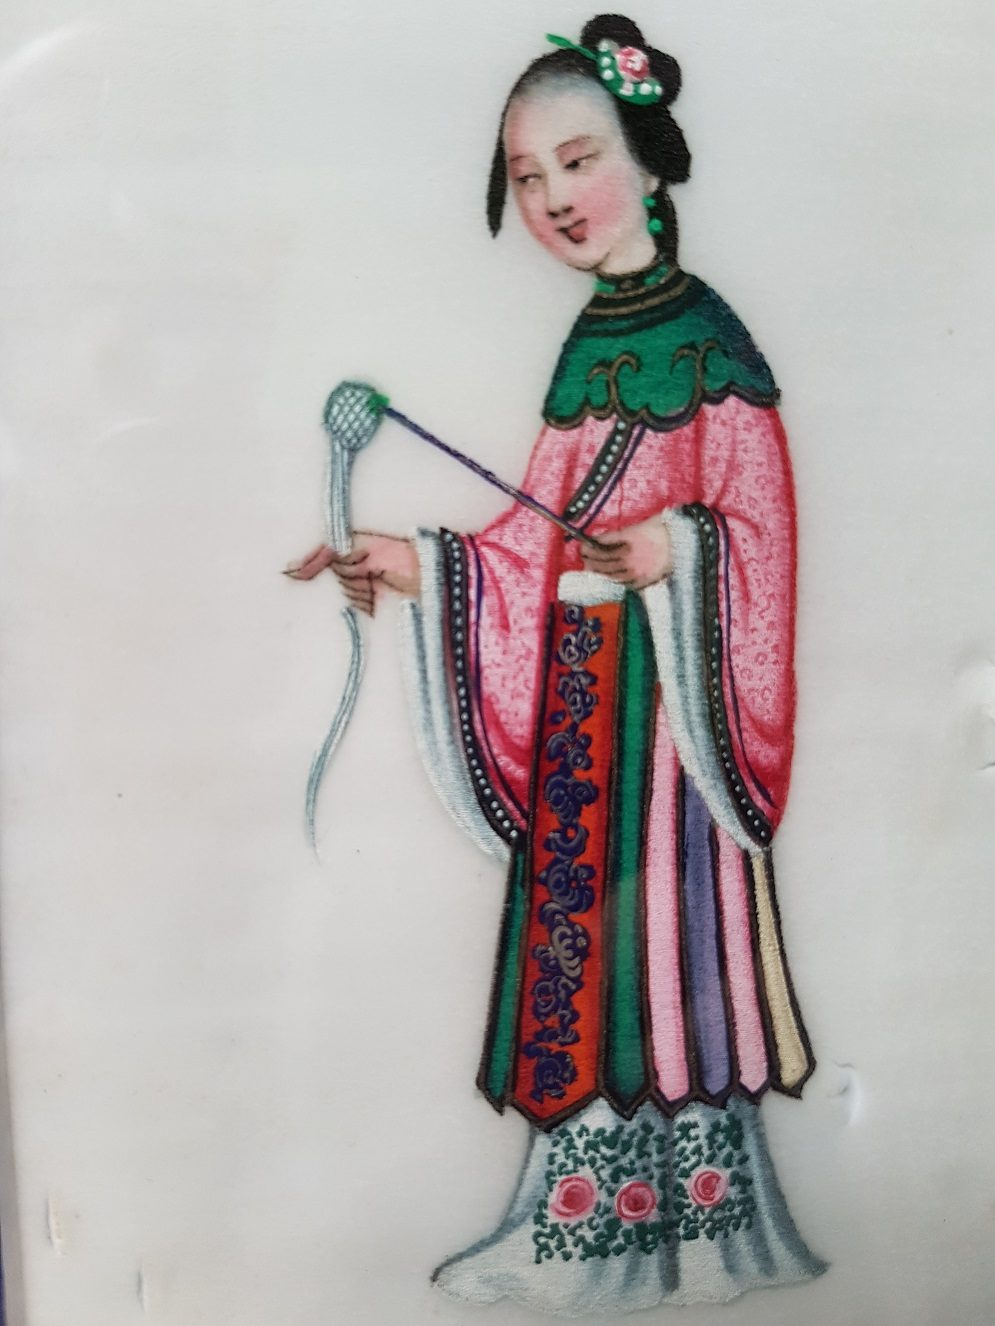 Pit paper Painting of a Chinese Elegant Lady Holding Spinning Implements